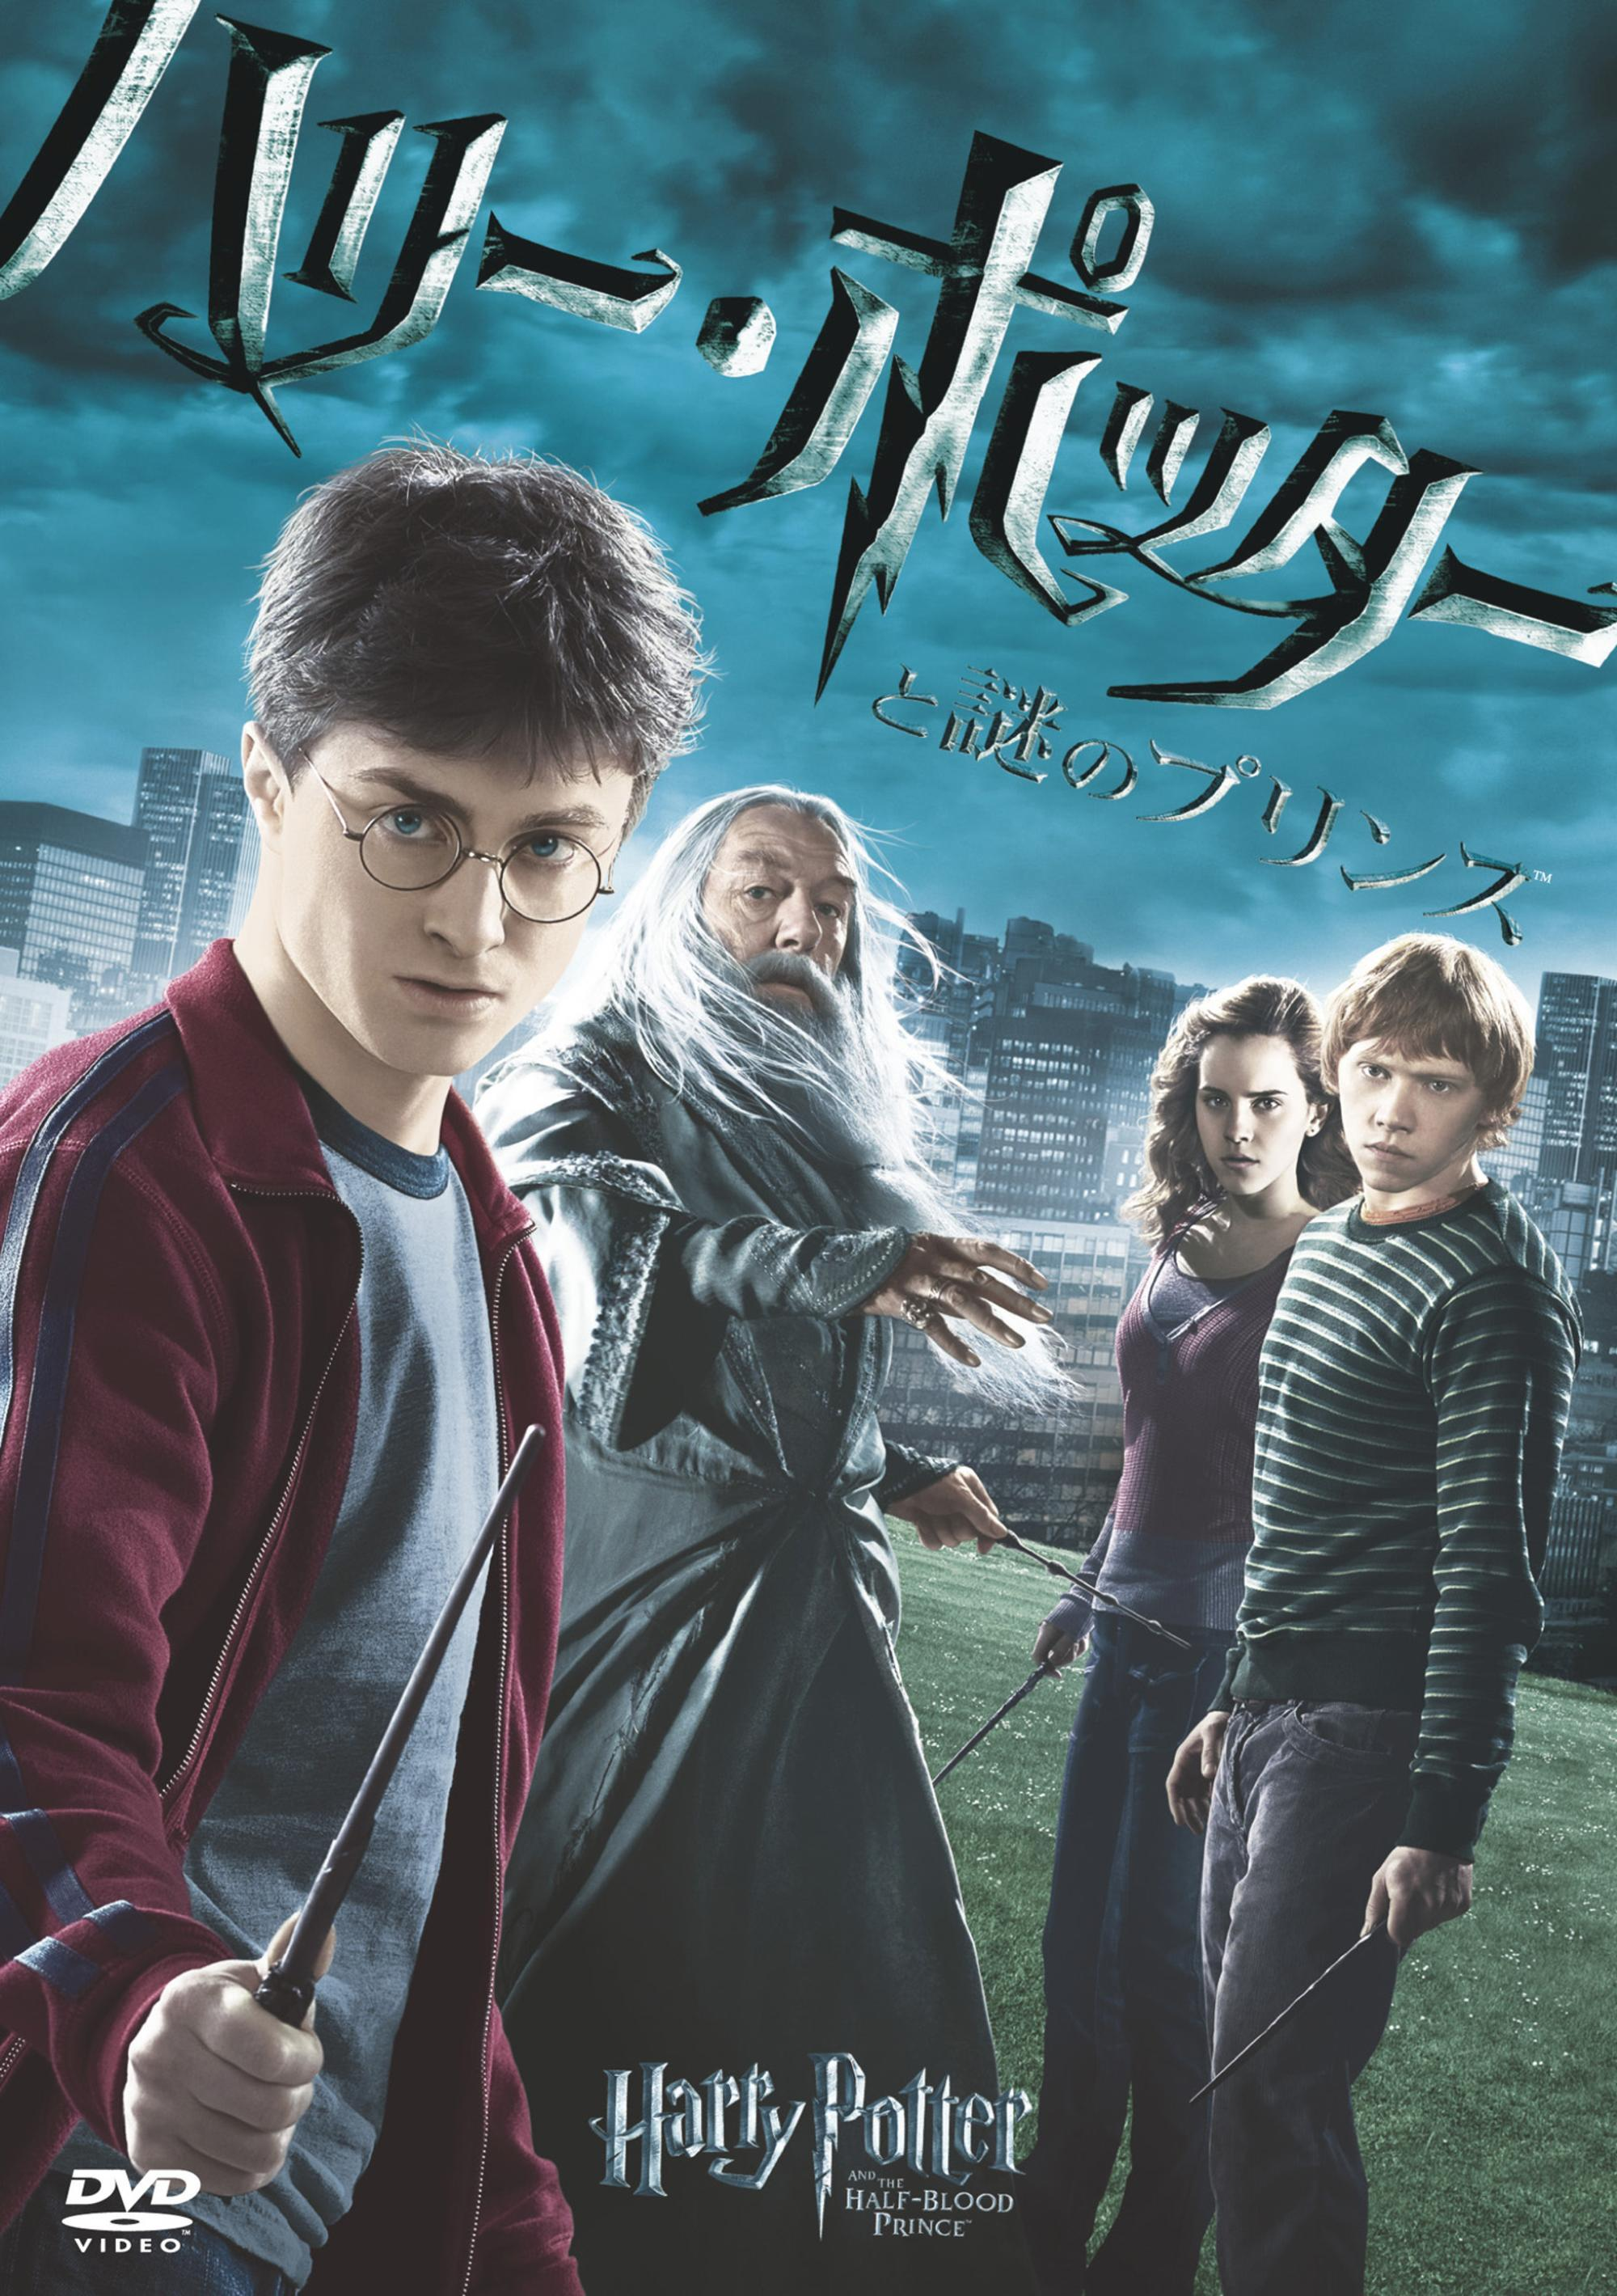 Tsutaya discas - Harry potter et la chambre des secrets streaming hd ...